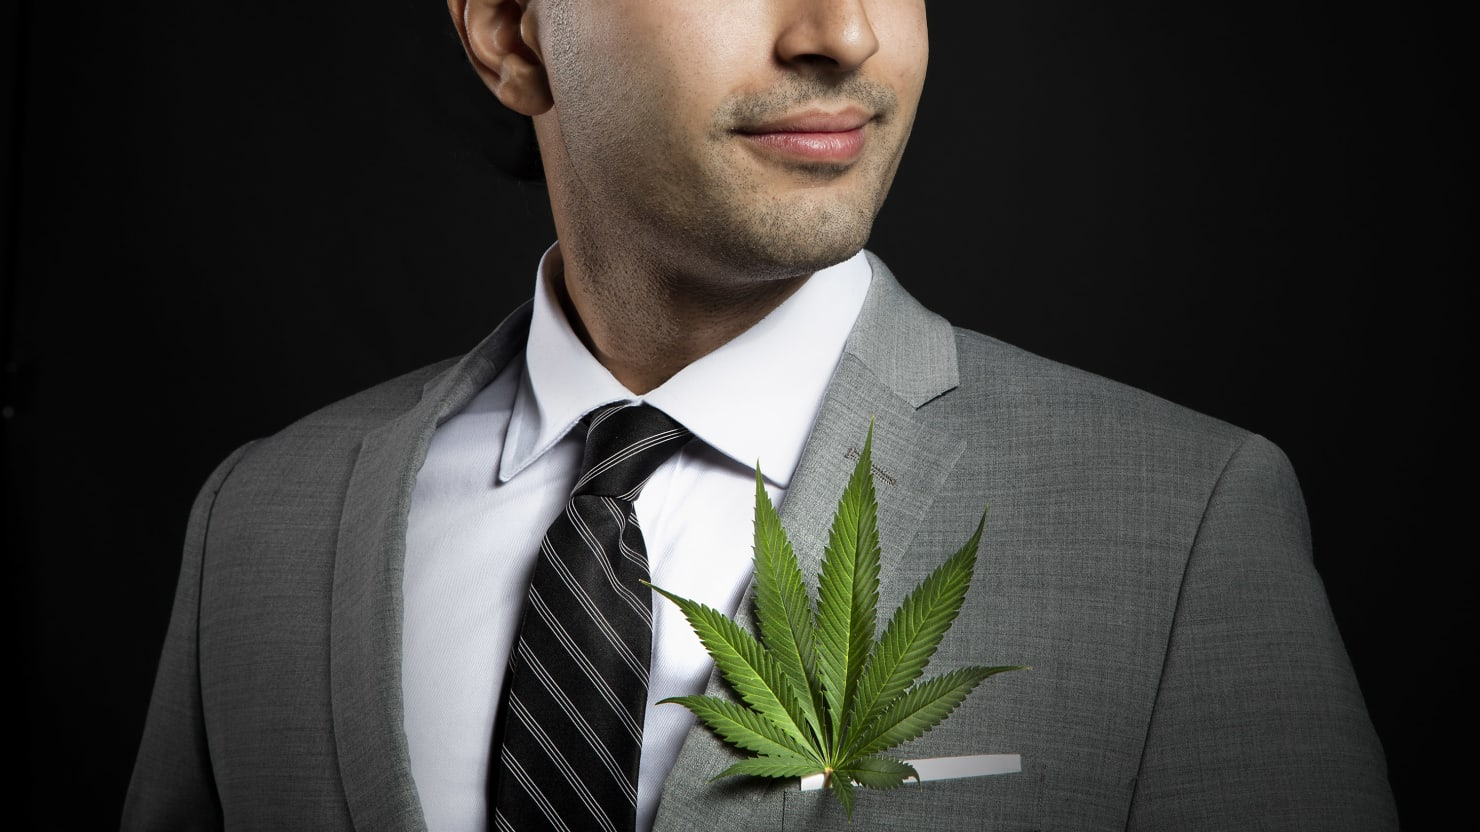 image of man in a suit with a marijuana leaf in his pocket 420 pot weed cannabis gender gap sex roles parity men women male female